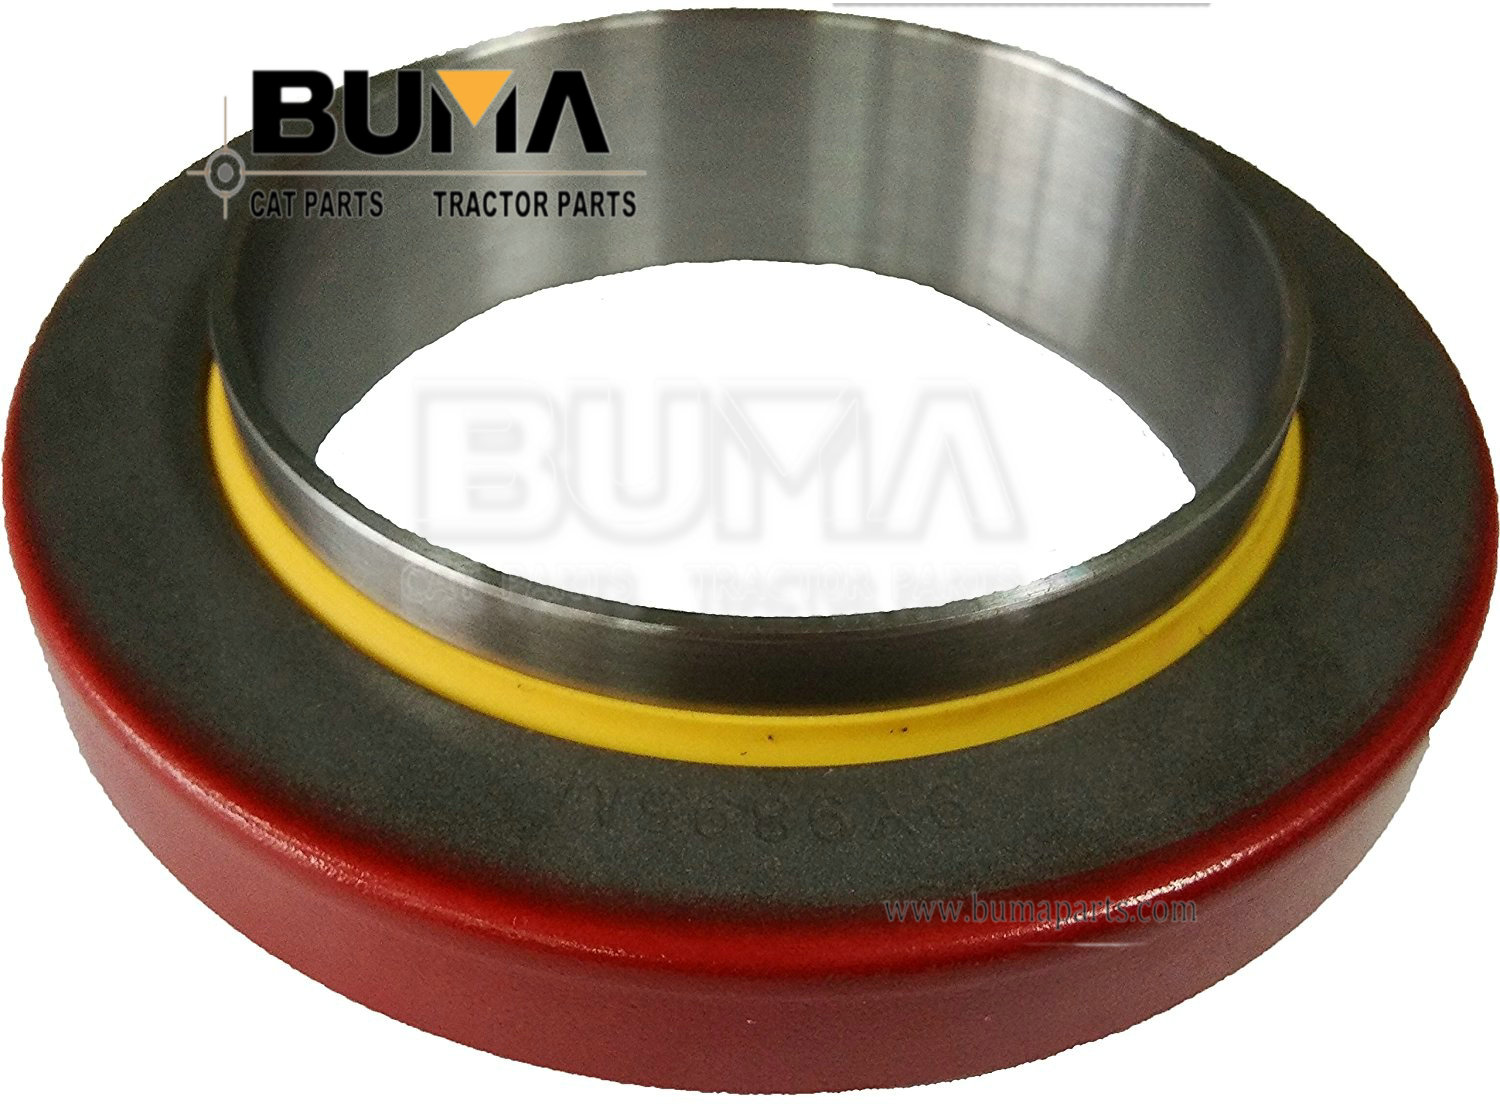 9Y9895 5S6296 Caterpillar Crankshaft seal